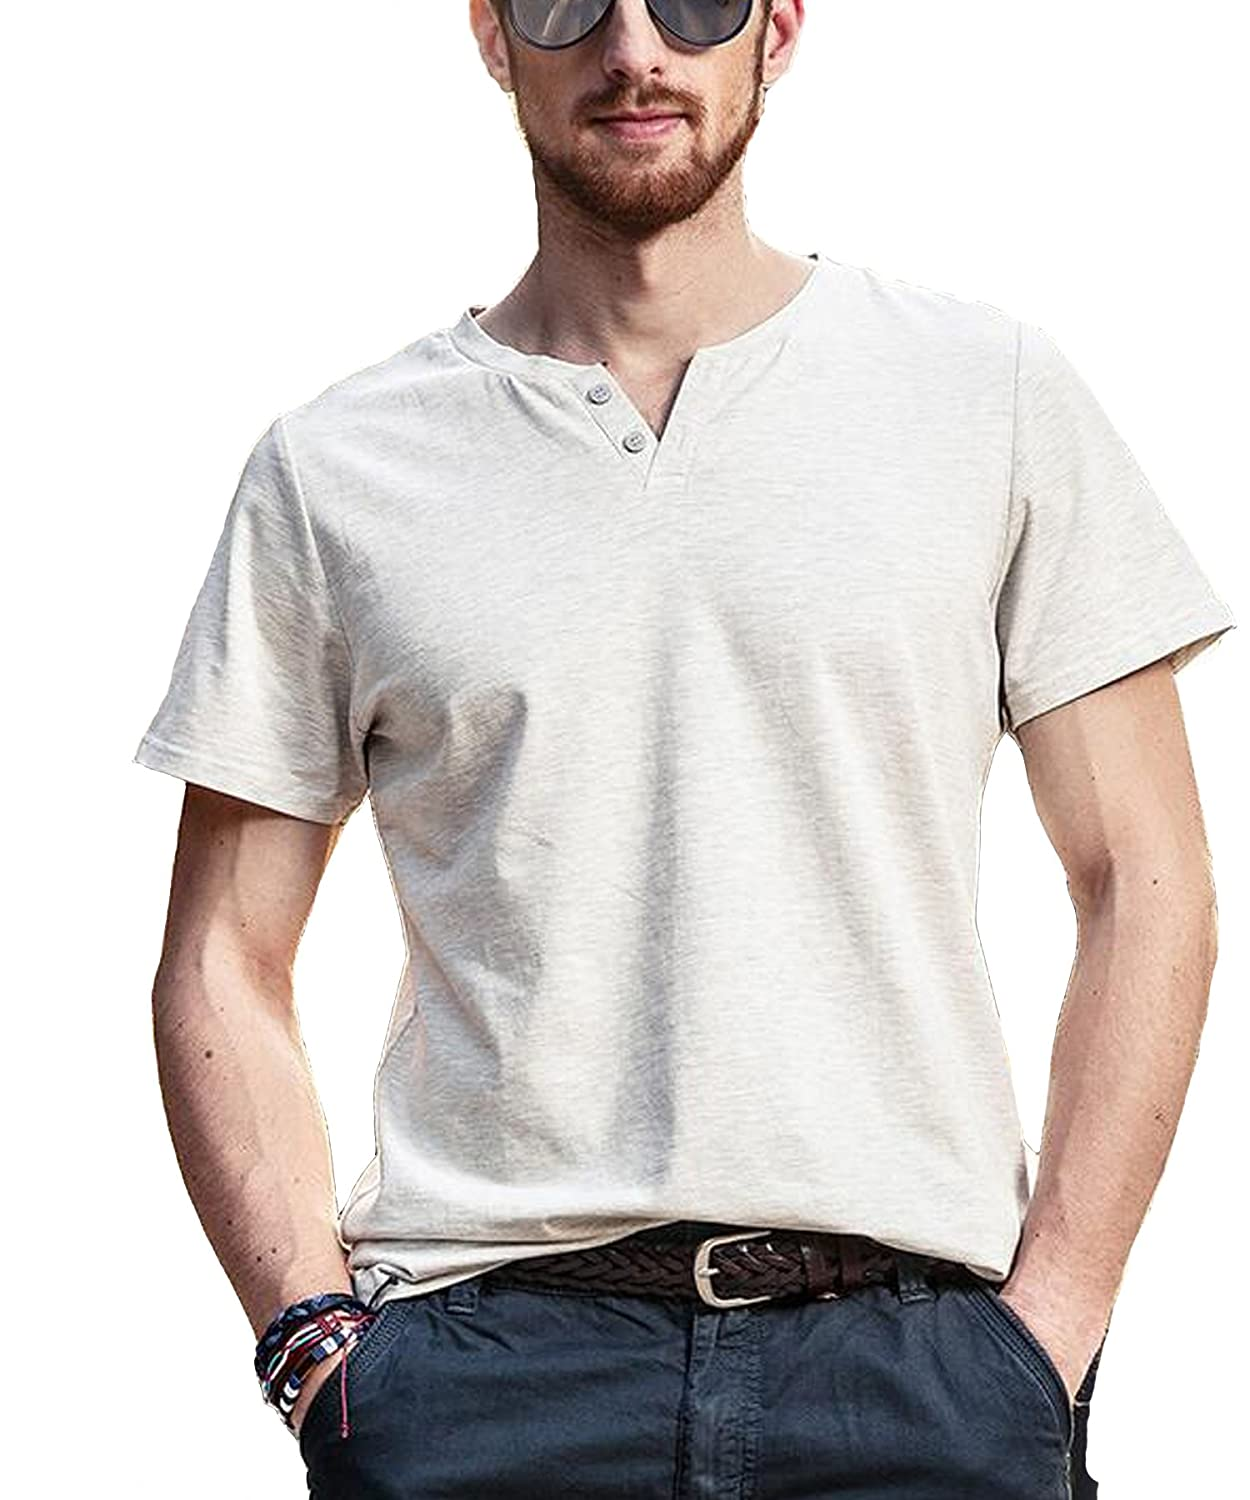 d99da7ab Men T-Shirts Summer Casual V-neck Button Short Sleeve Tees (US Medium,  Gray) | Amazon.com